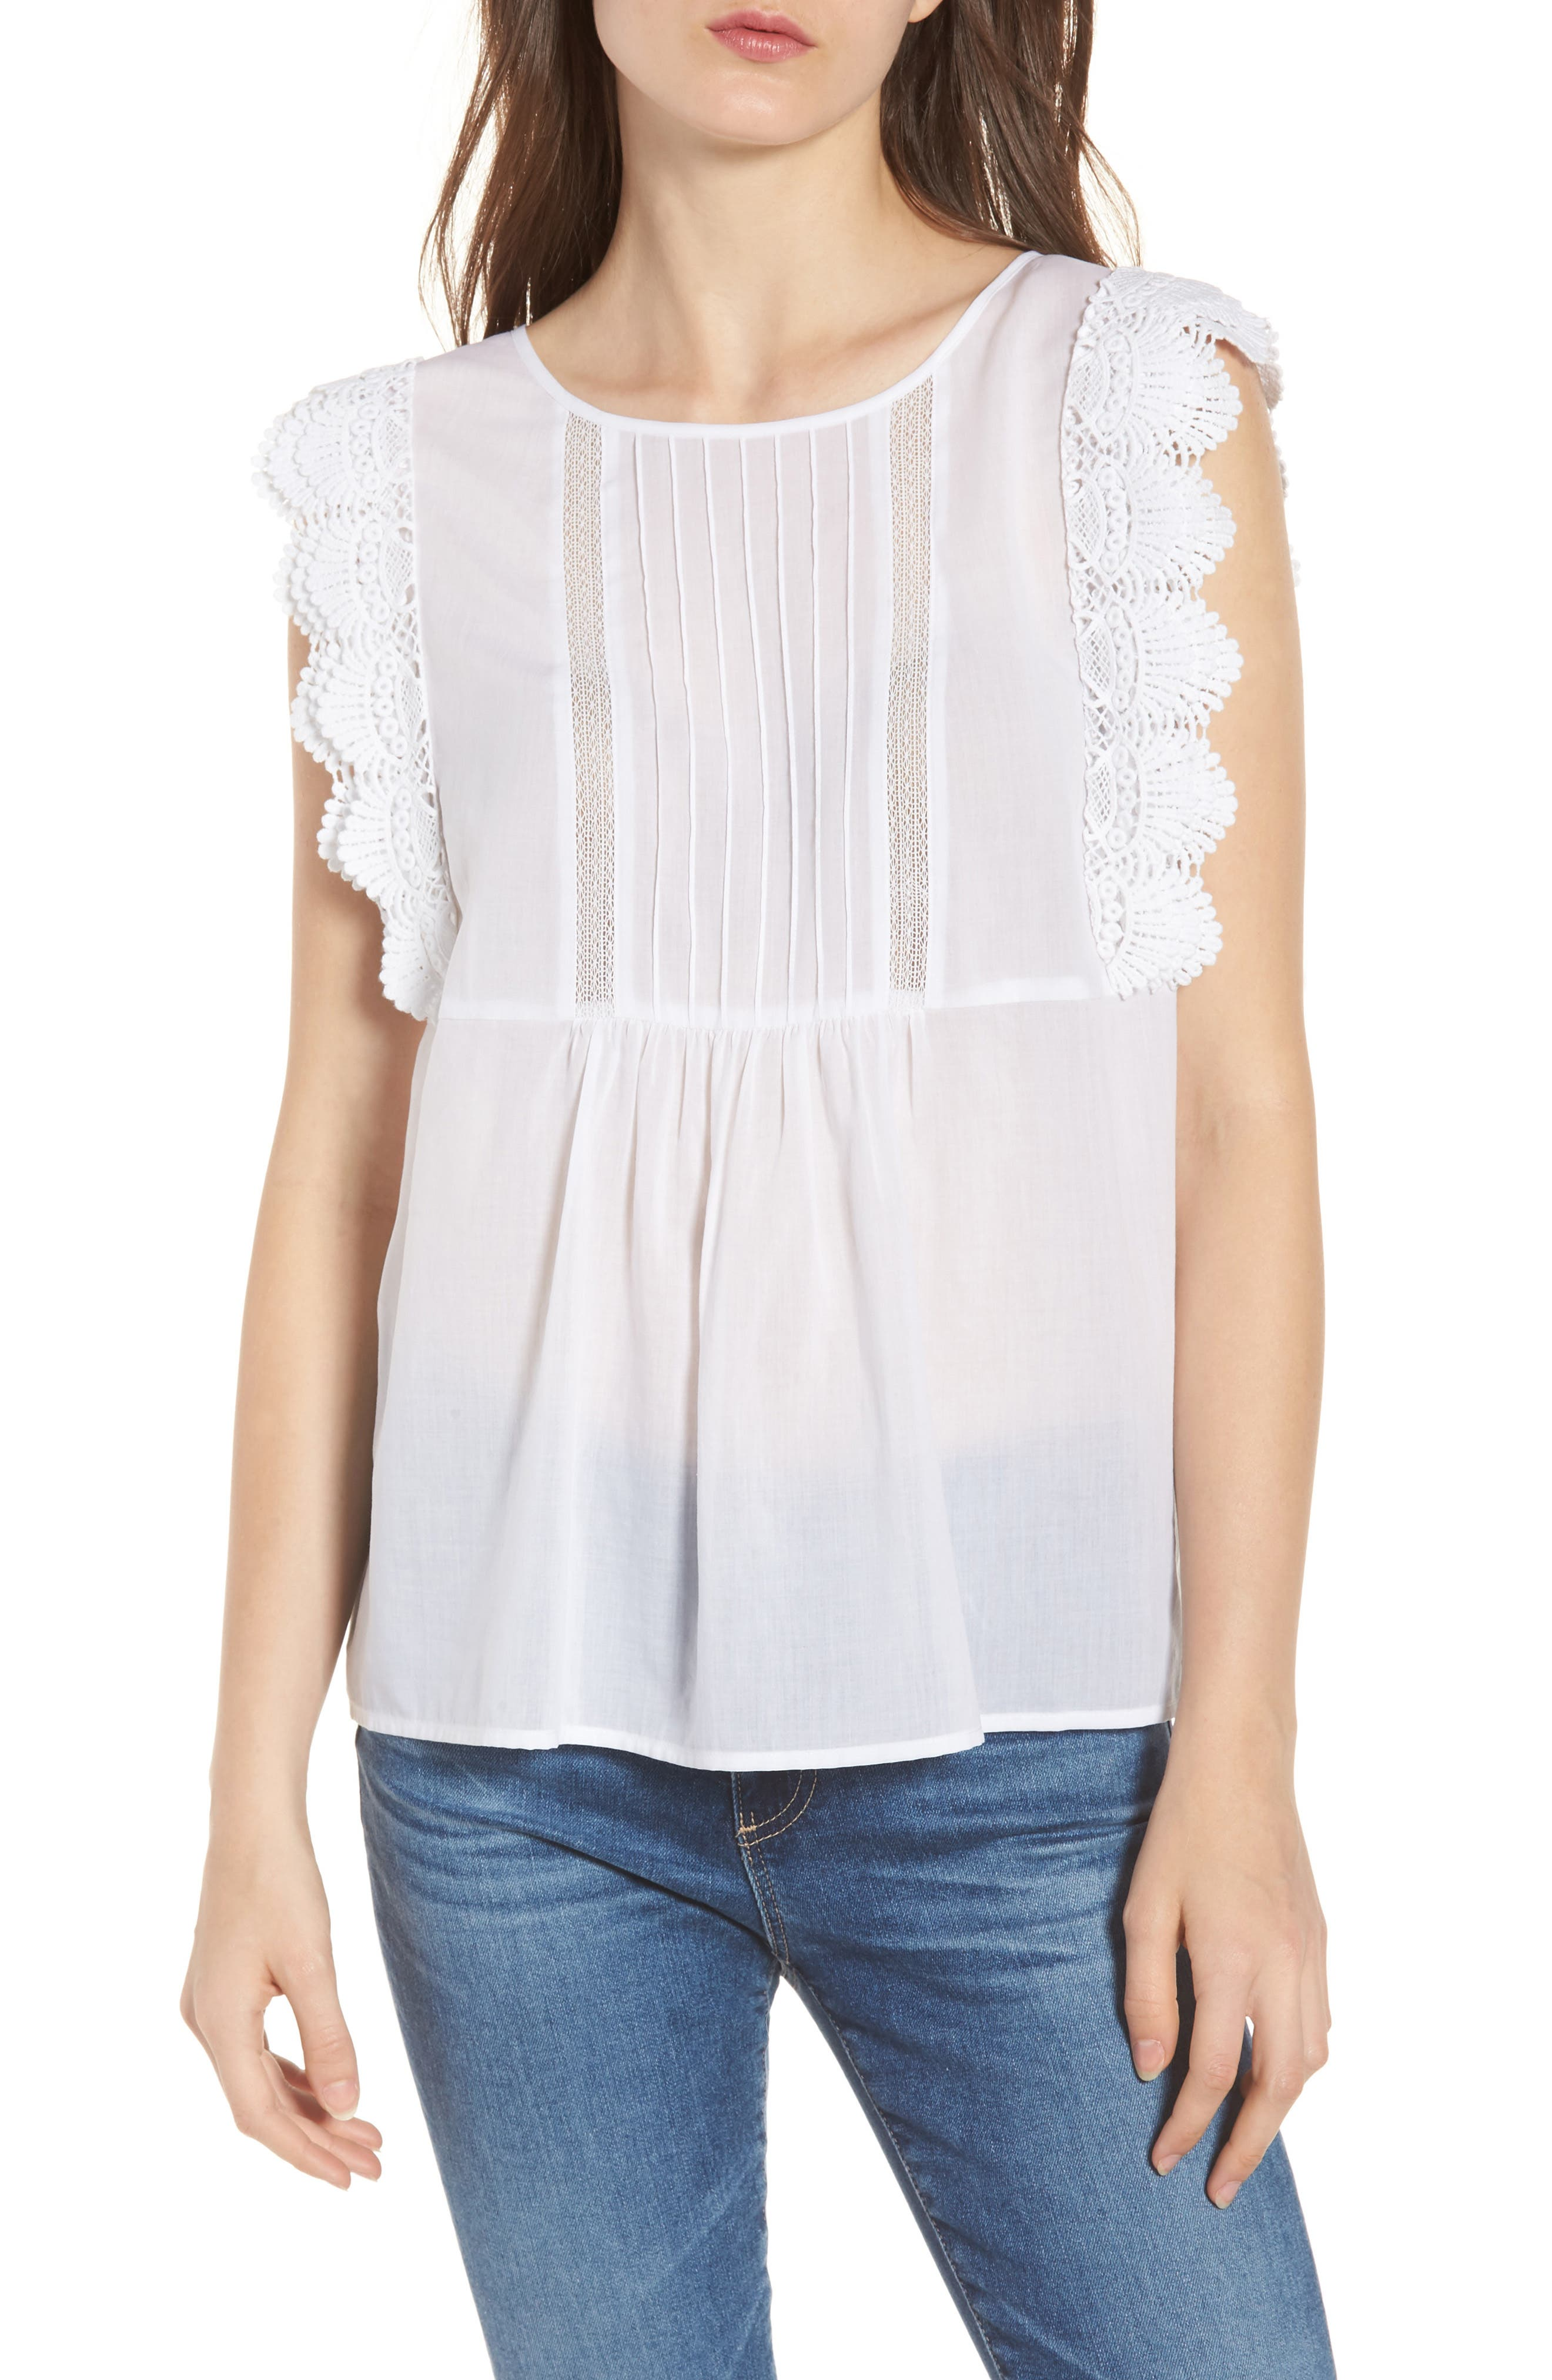 Chelsea28 Lace Trim Top